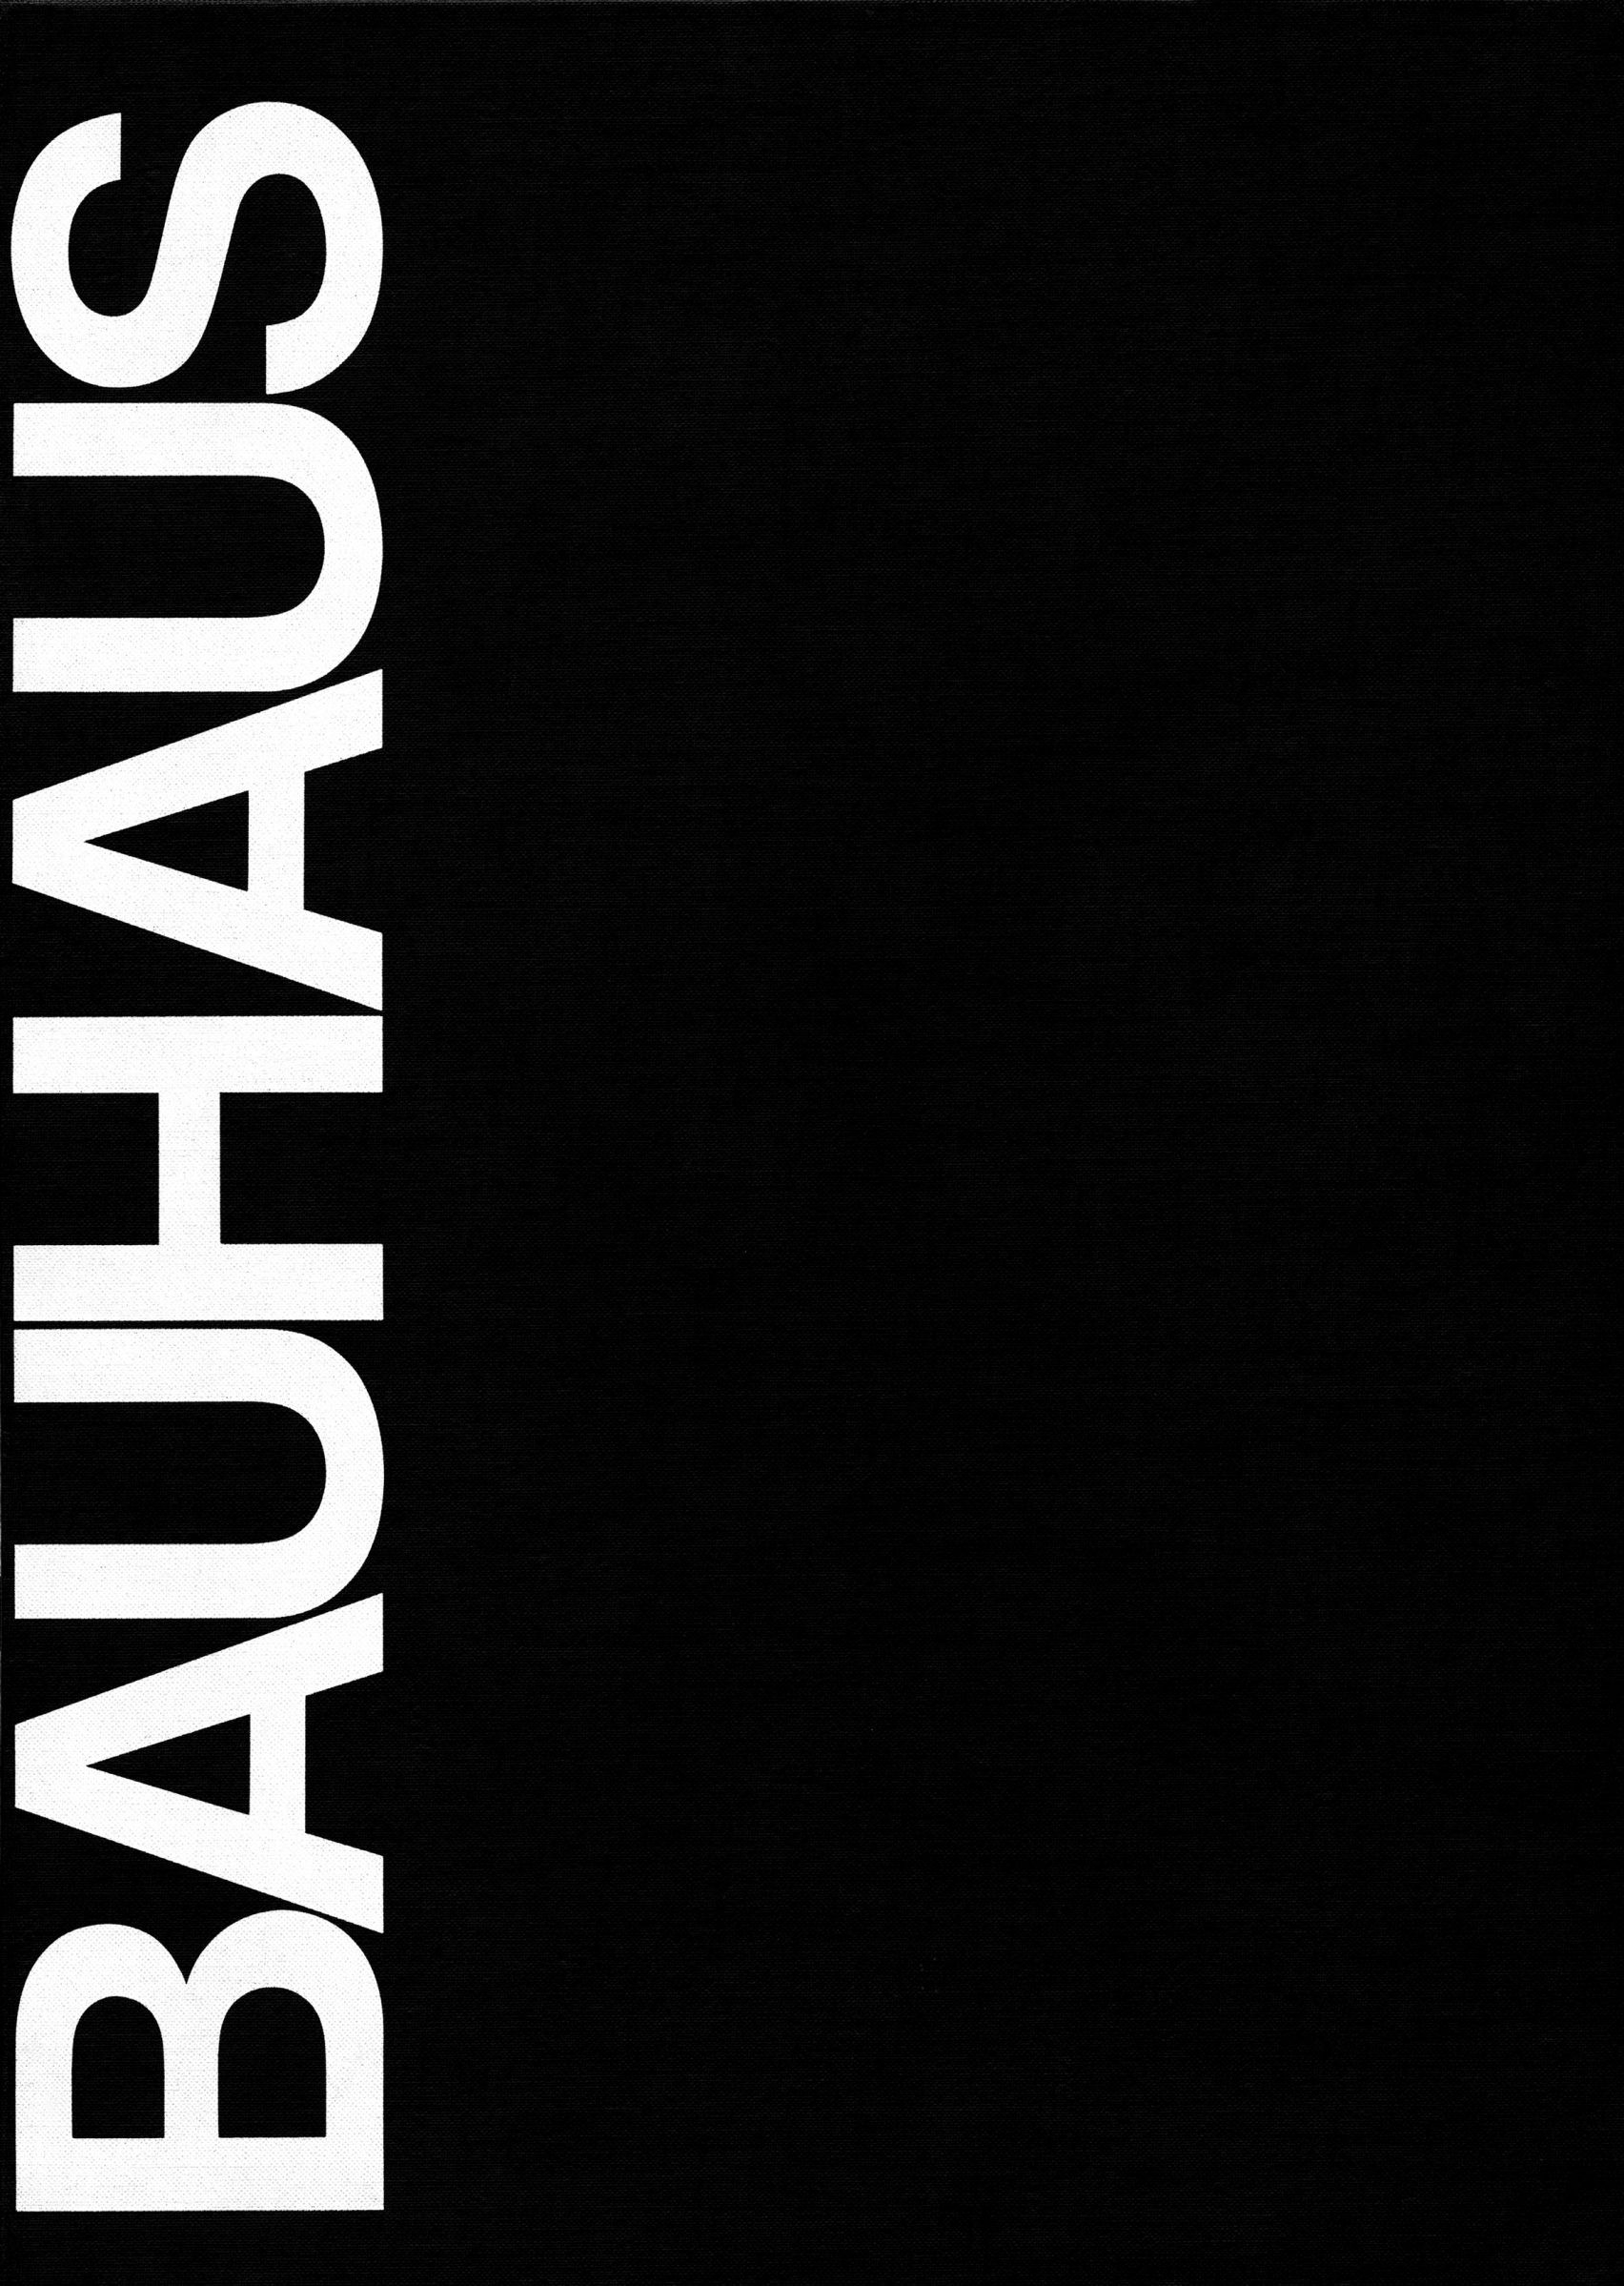 10 Bauhaus books to learn about 100 years of the design